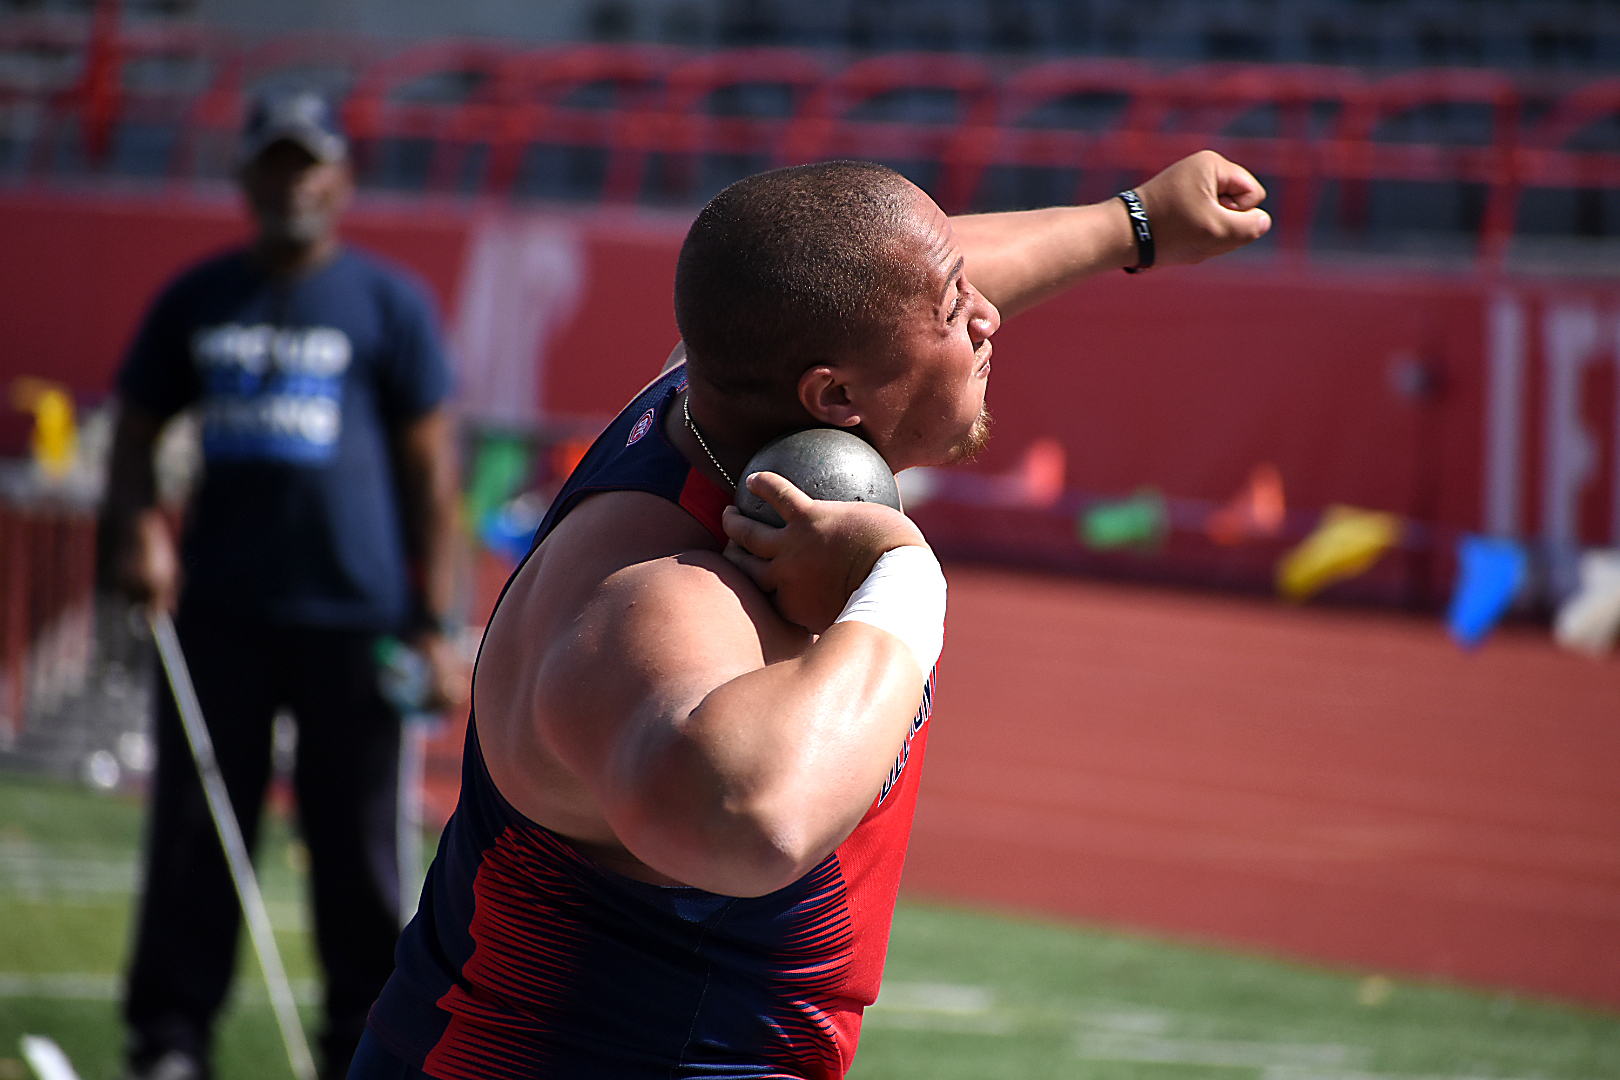 Corey Claiborne throws the shot put at the Governors Invitational in Clarksville, Tenn. on Friday, April 13, 2018.